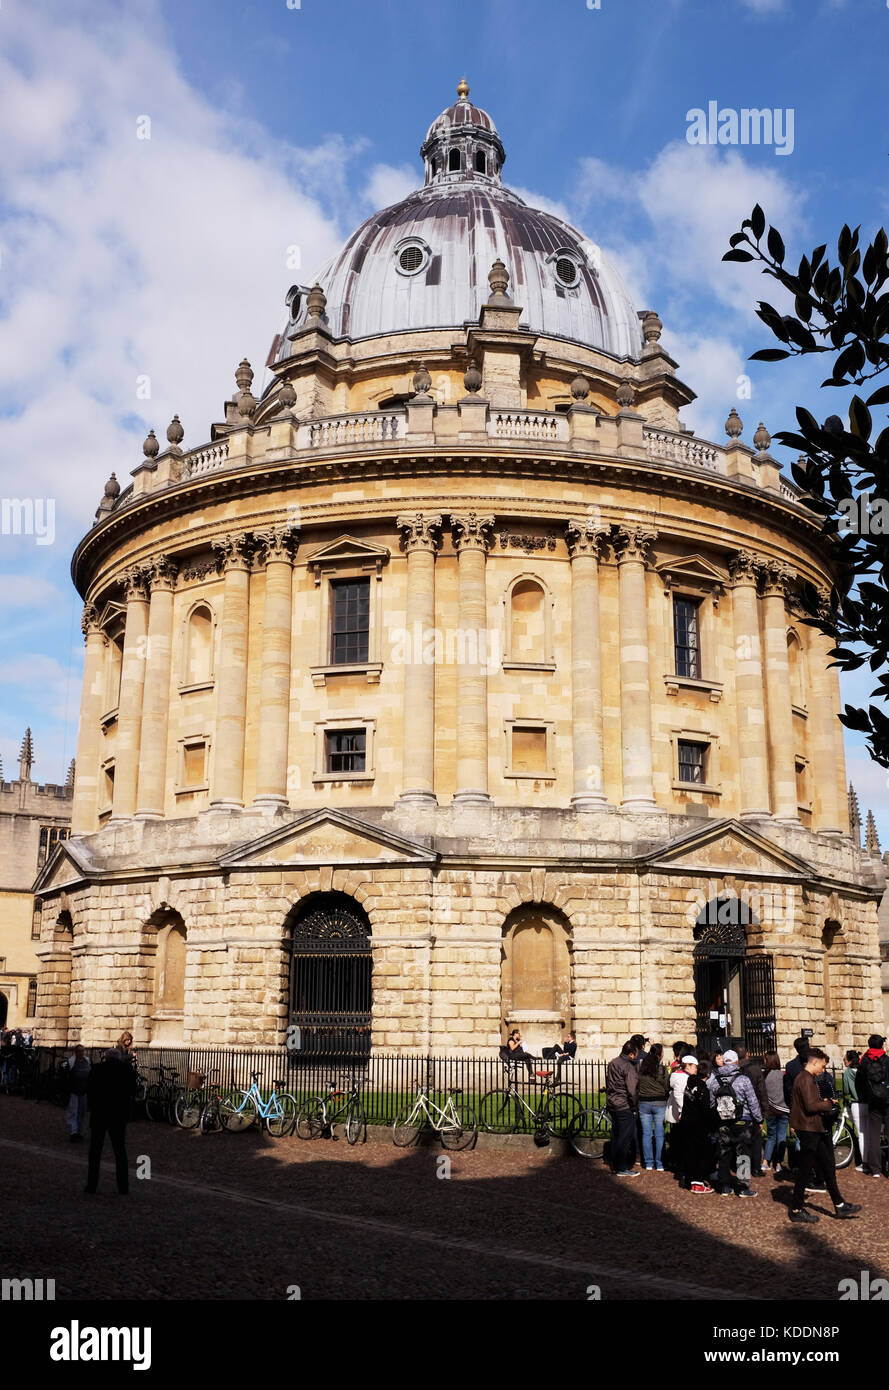 Oxford Oxfordshire UK - The Radcliffe Camera building part of the Bodleian Library in the centre of the university - Stock Image